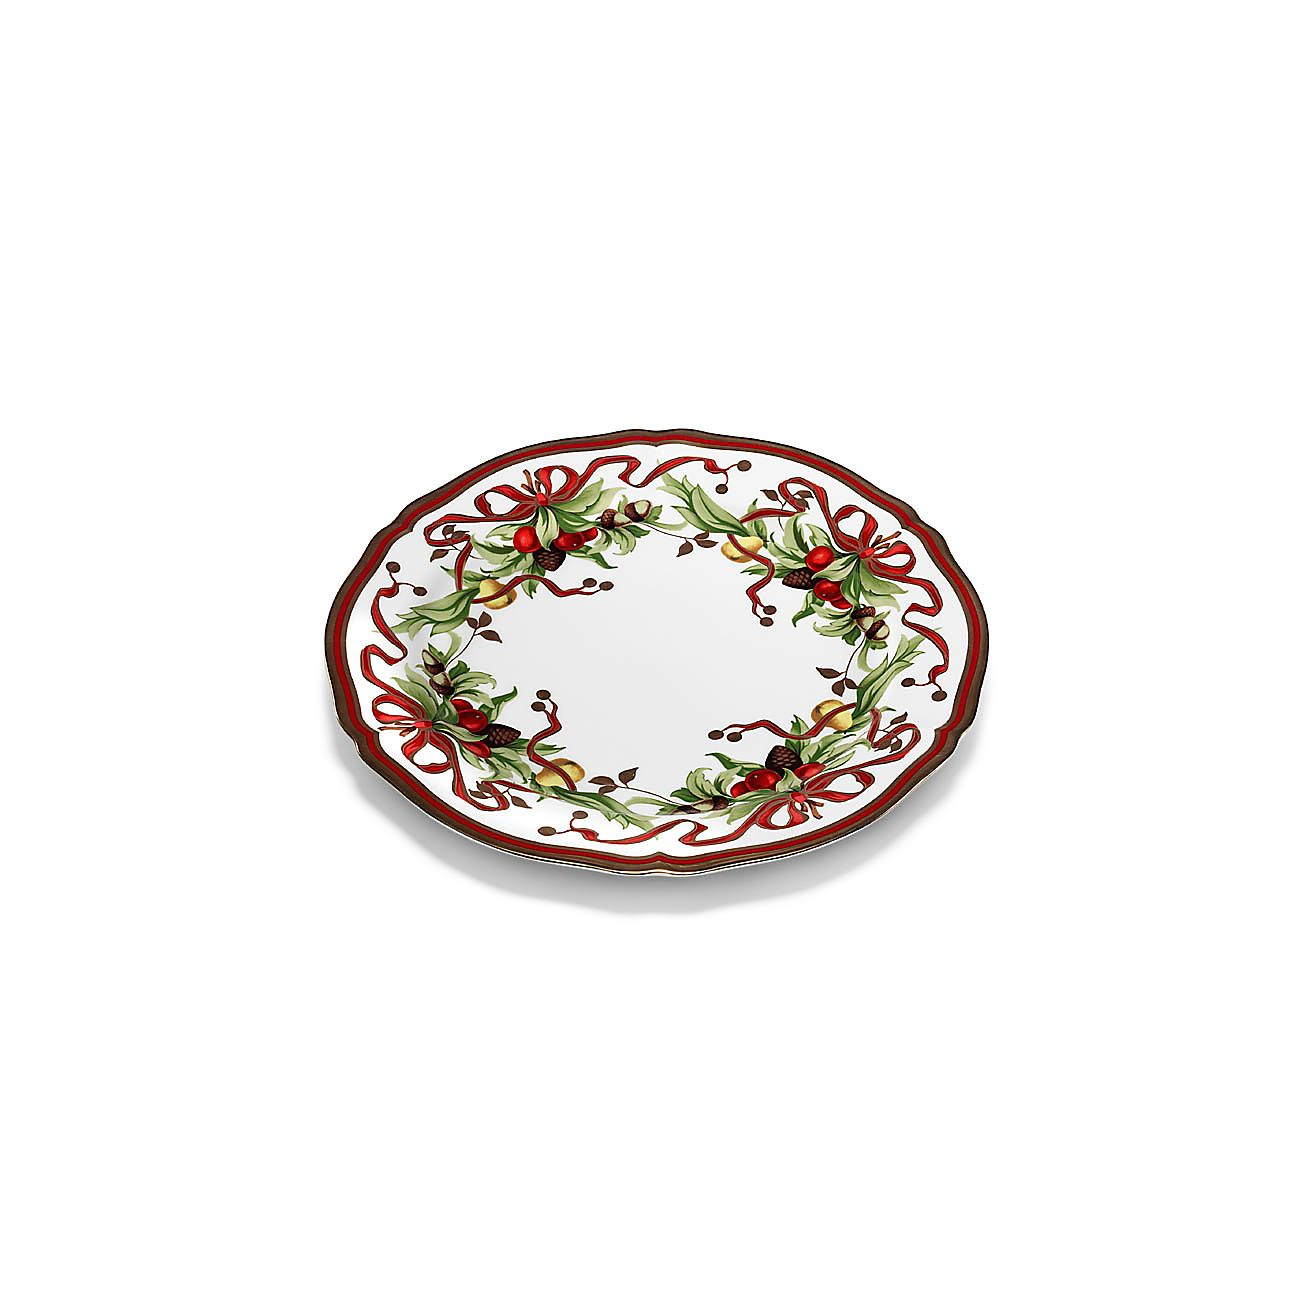 serving plate in porcelain co